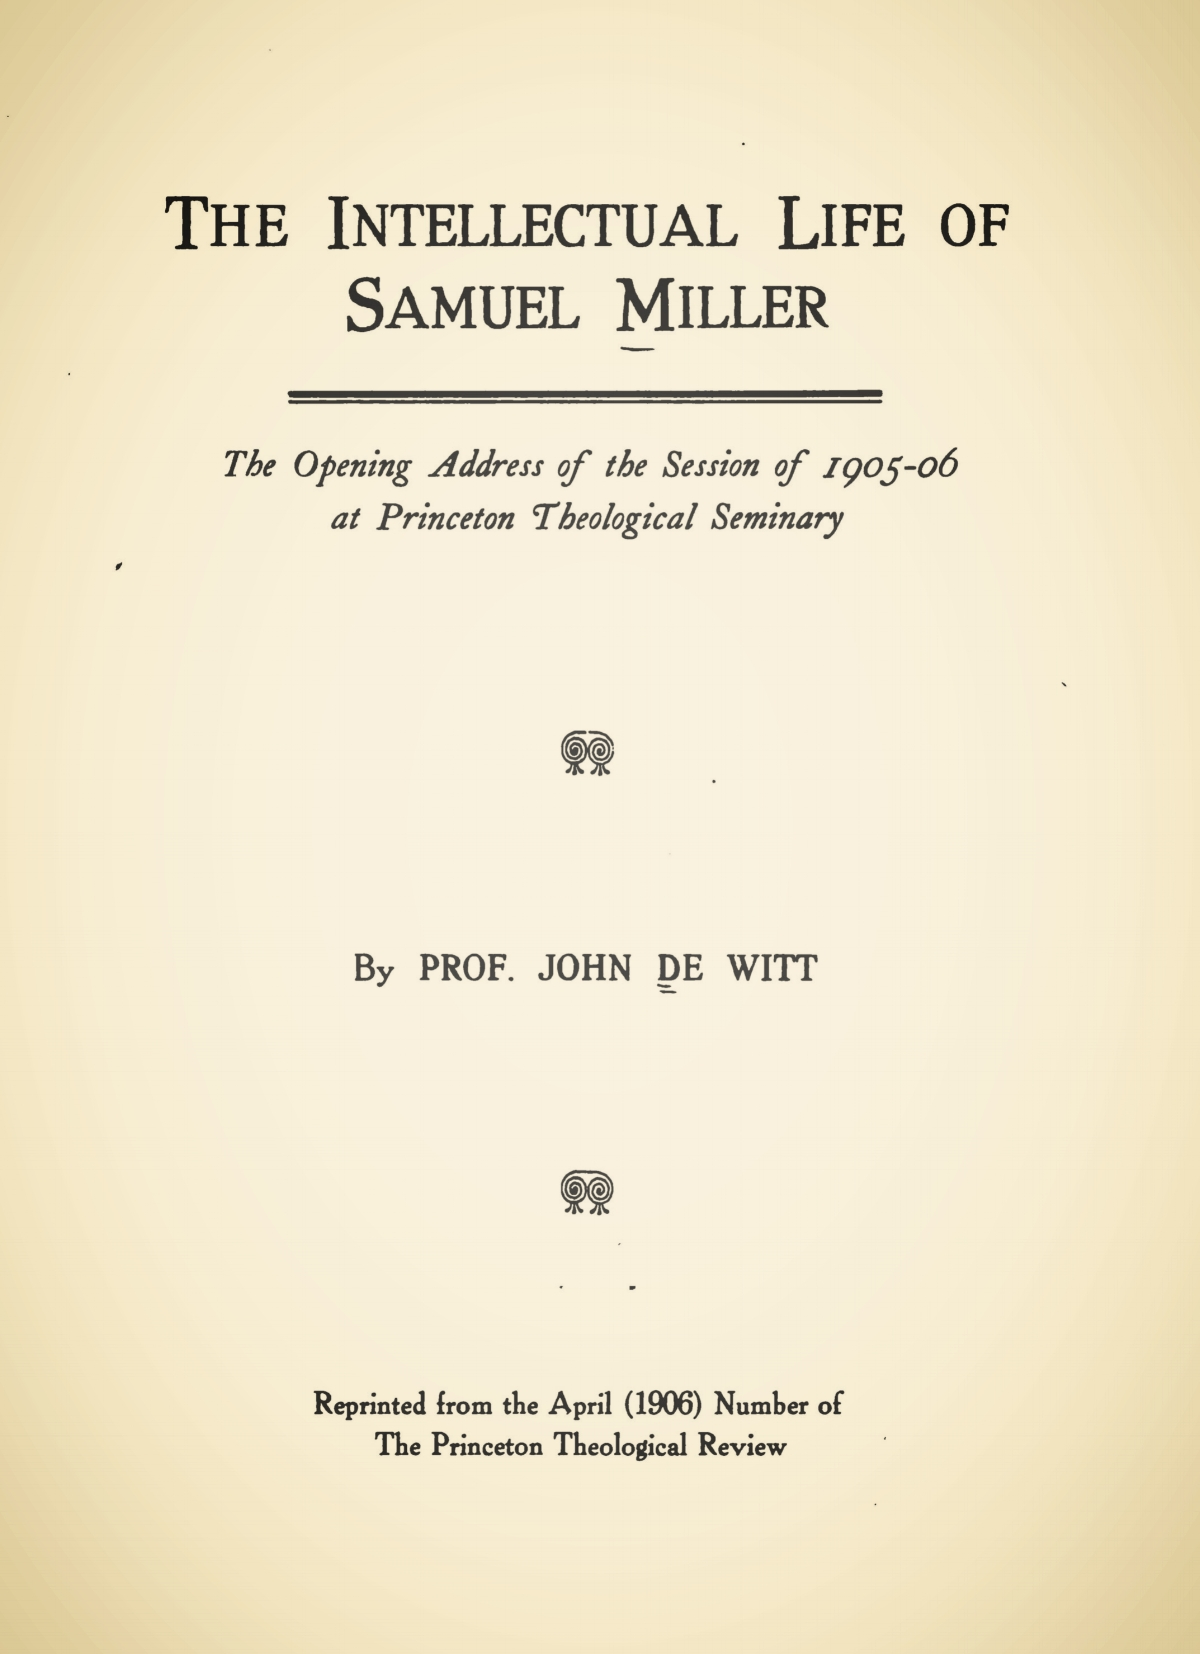 DeWitt, John, The Intellectual Life of Samuel Miller Title Page.jpg